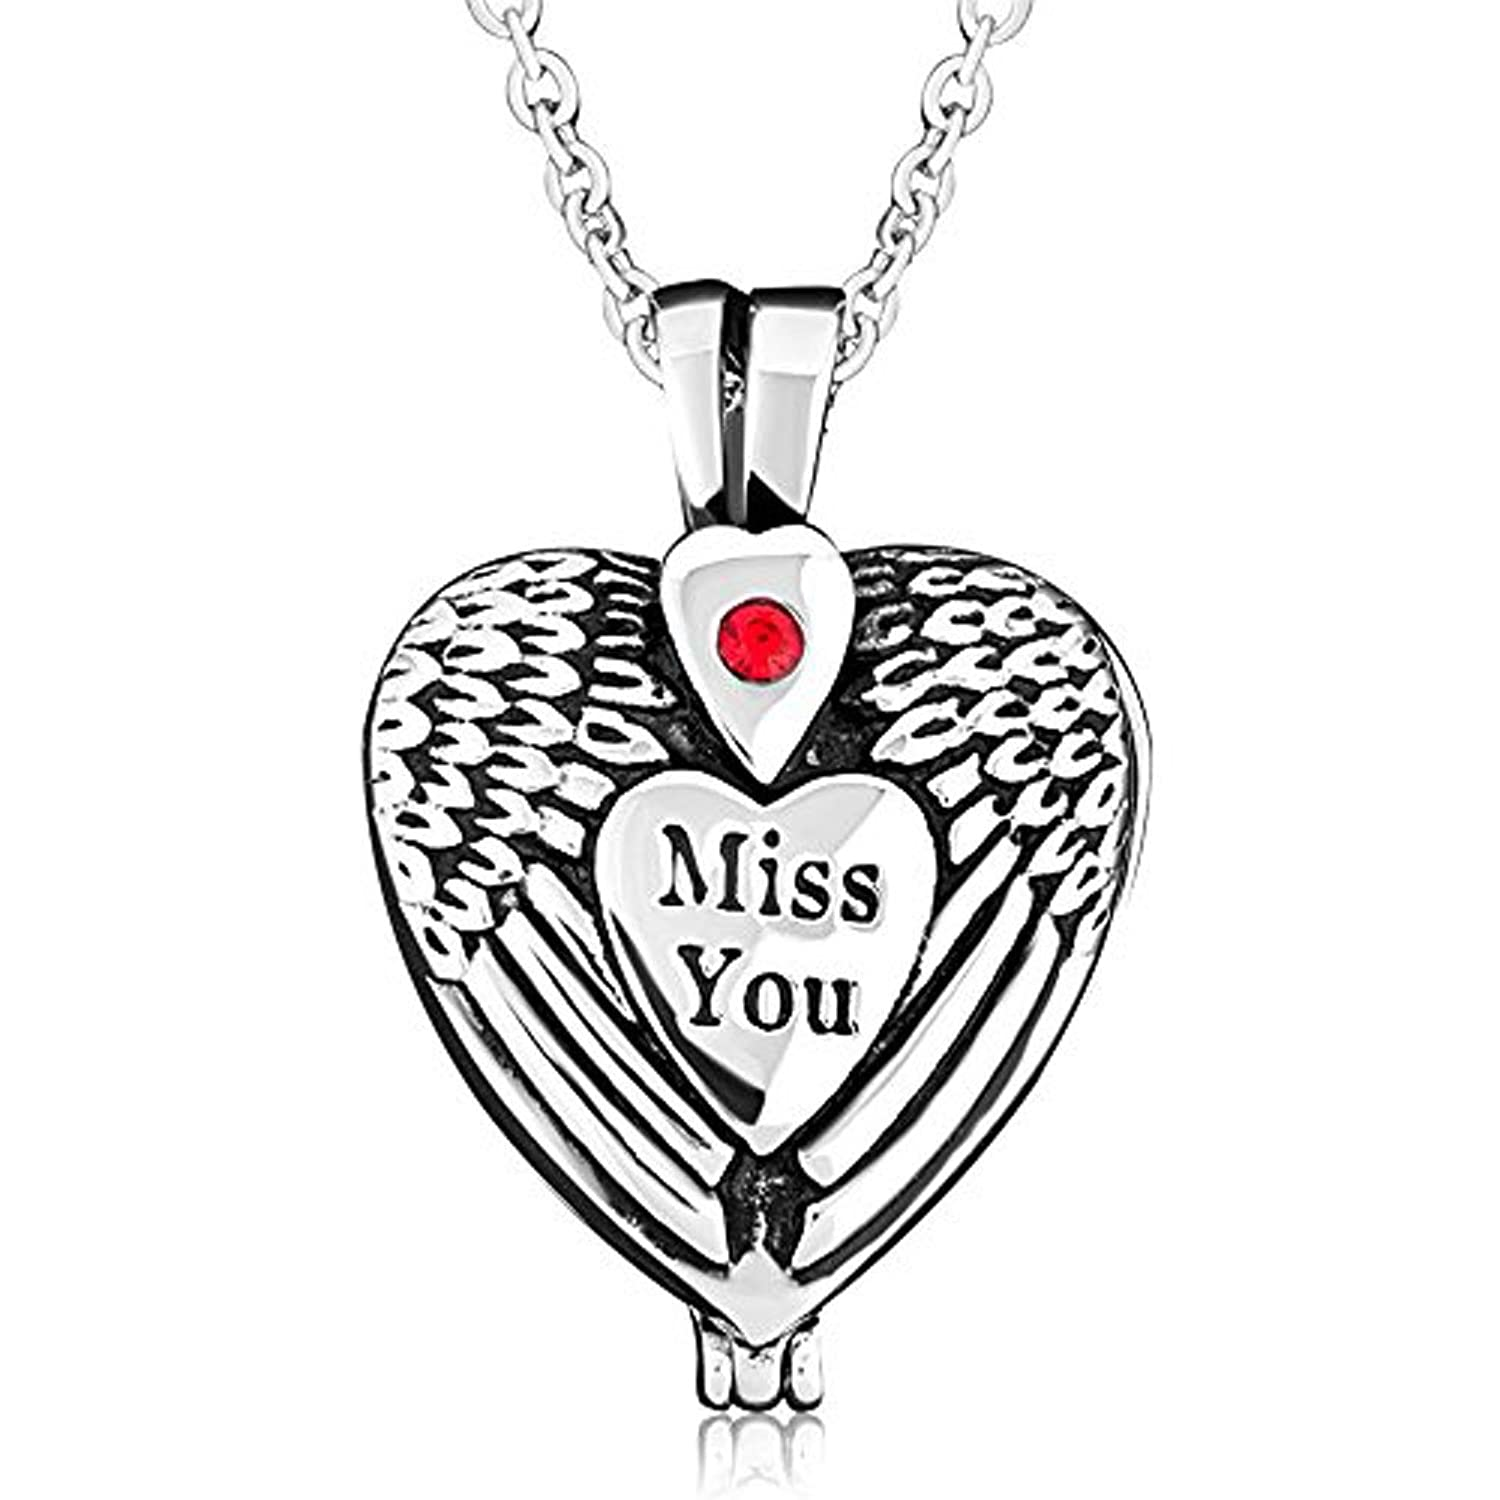 Amazon charmsstory cremation ashes urn necklaces heart miss amazon charmsstory cremation ashes urn necklaces heart miss you angel wings memorial keepsake holder pendant jewelry mozeypictures Images